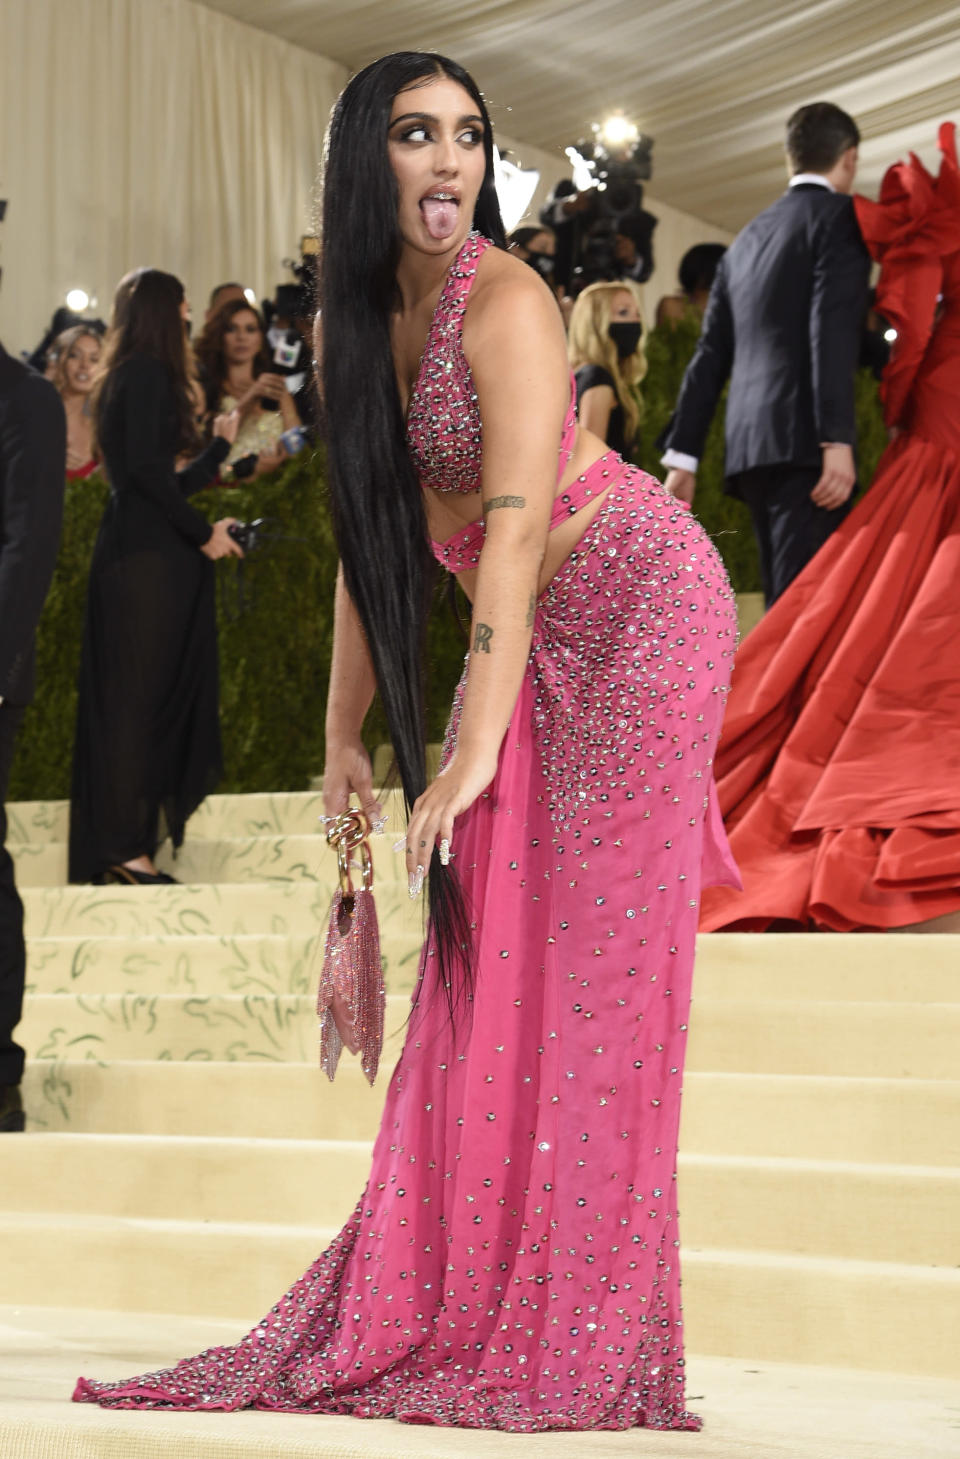 """Lourdes Leon attends The Metropolitan Museum of Art's Costume Institute benefit gala celebrating the opening of the """"In America: A Lexicon of Fashion"""" exhibition on Monday, Sept. 13, 2021, in New York. (Photo by Evan Agostini/Invision/AP)"""